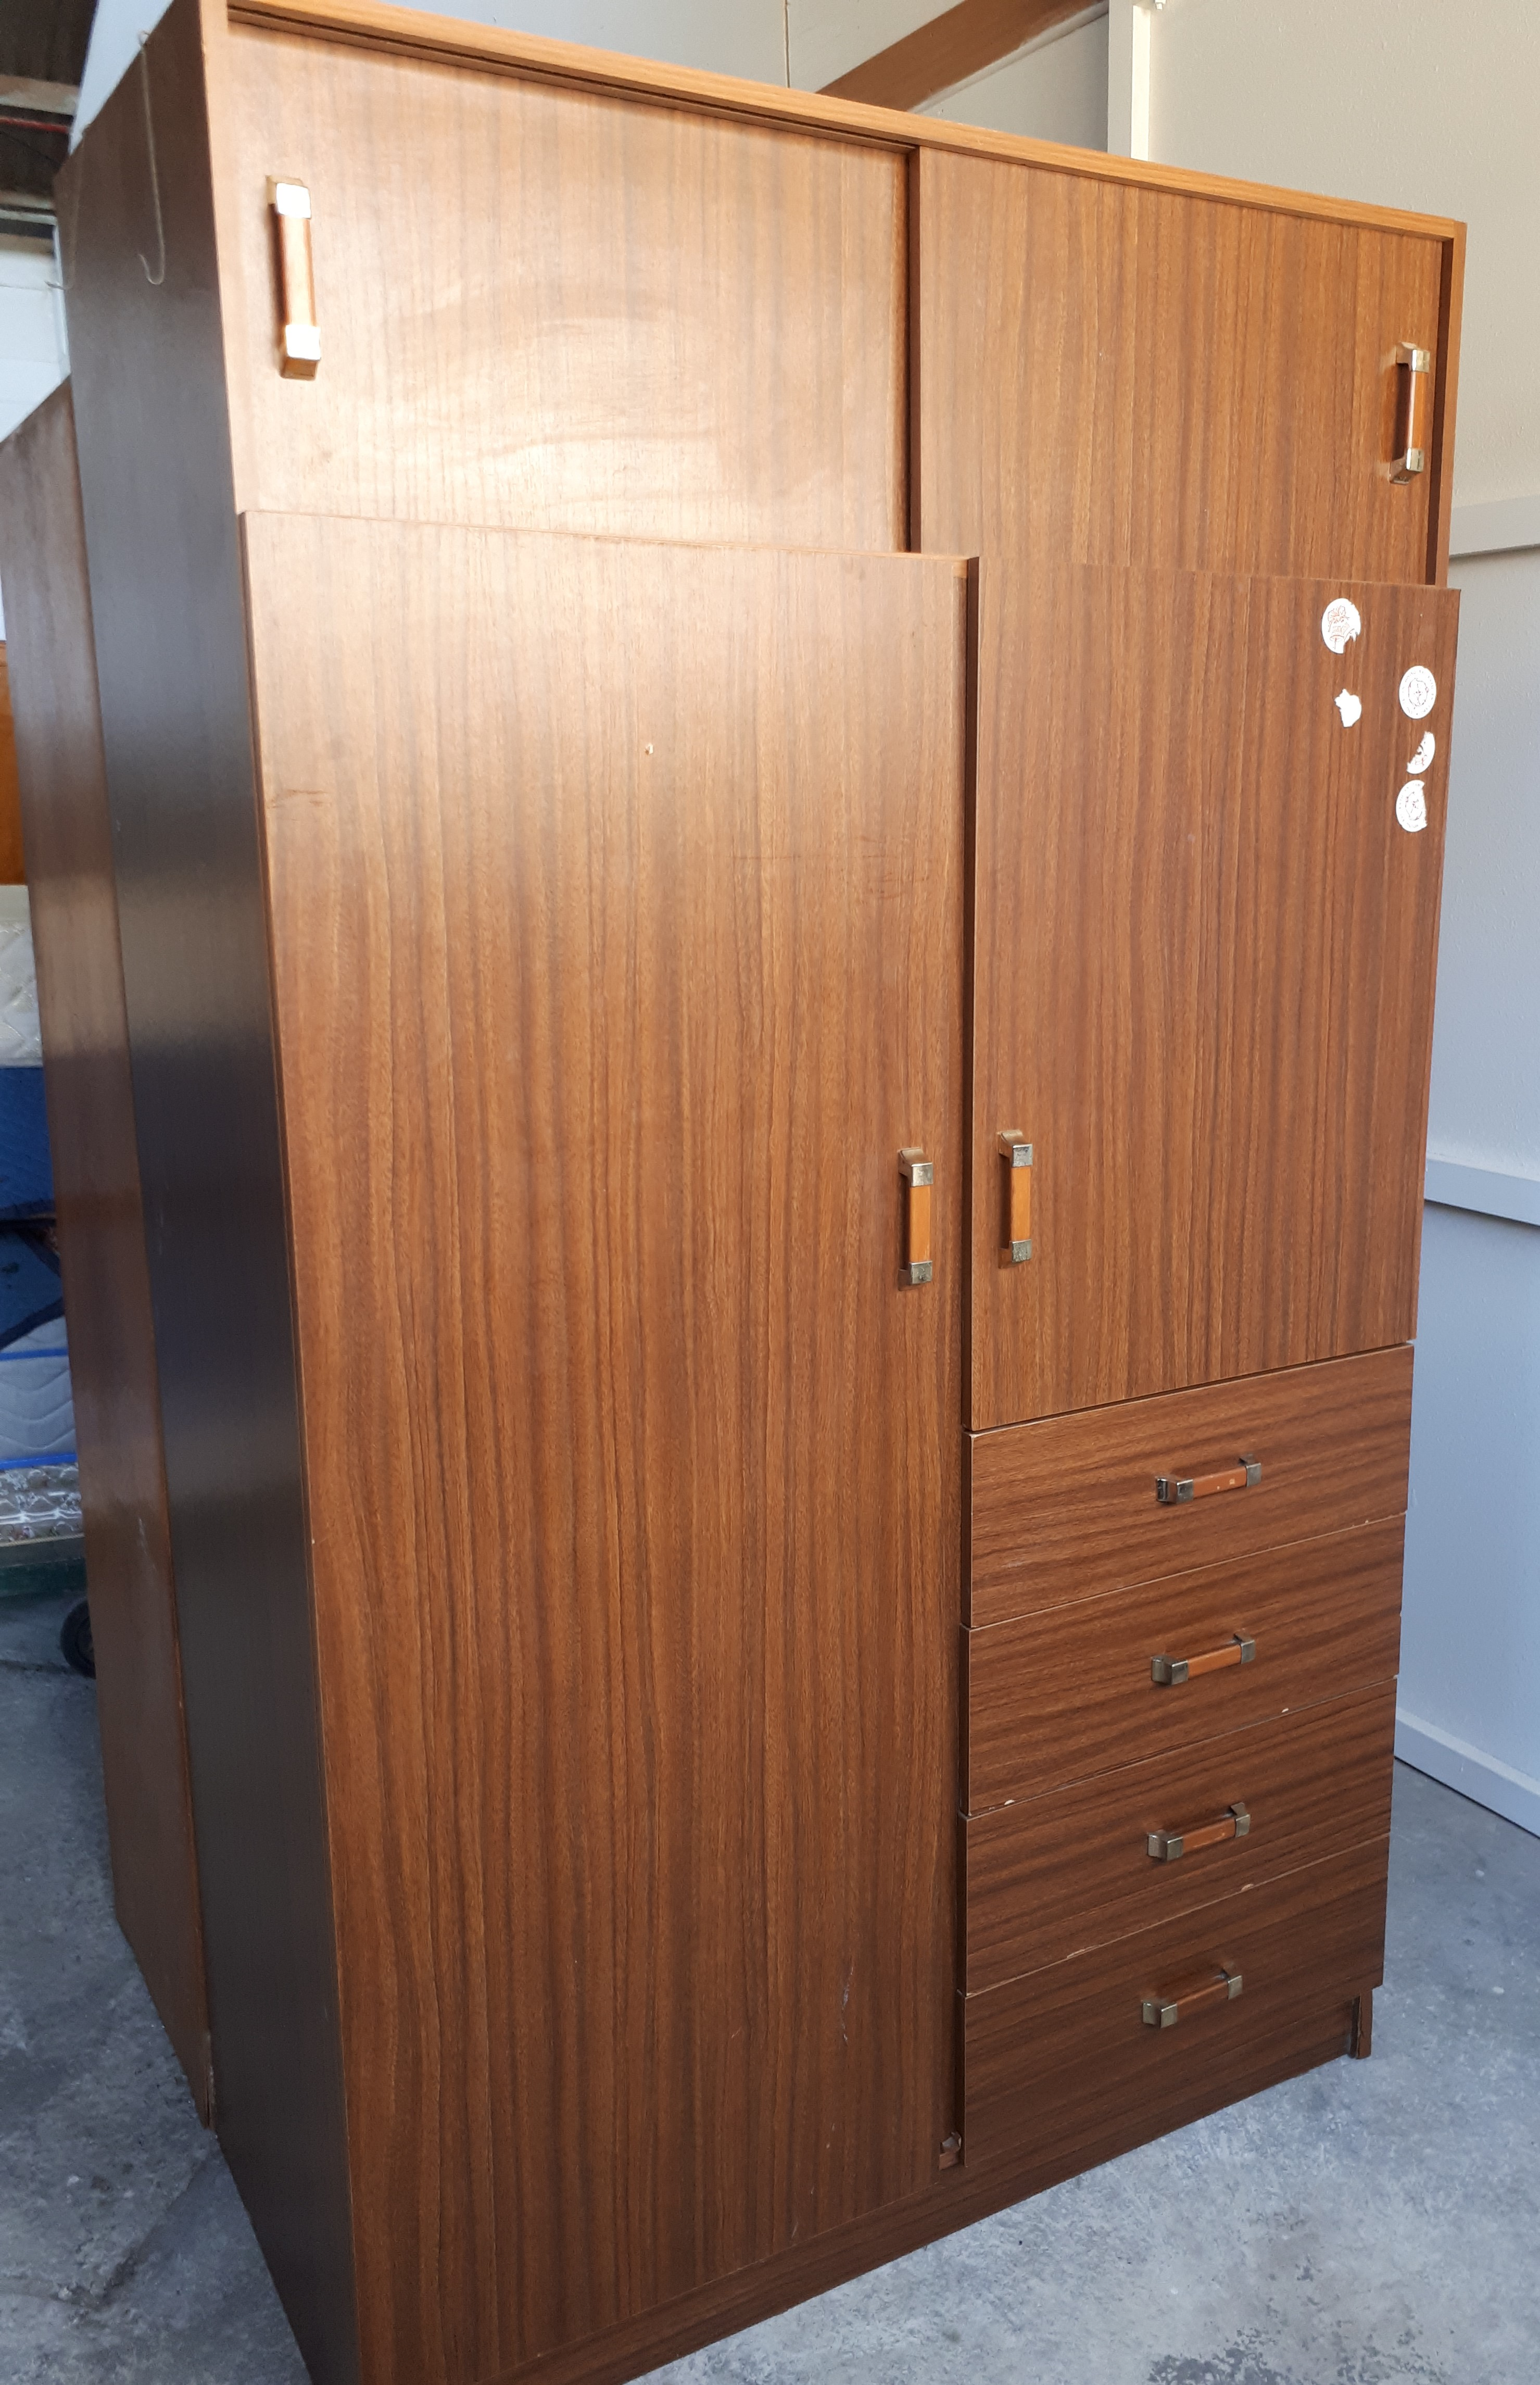 Wardrobe office furniture plus - Home office furniture components ...